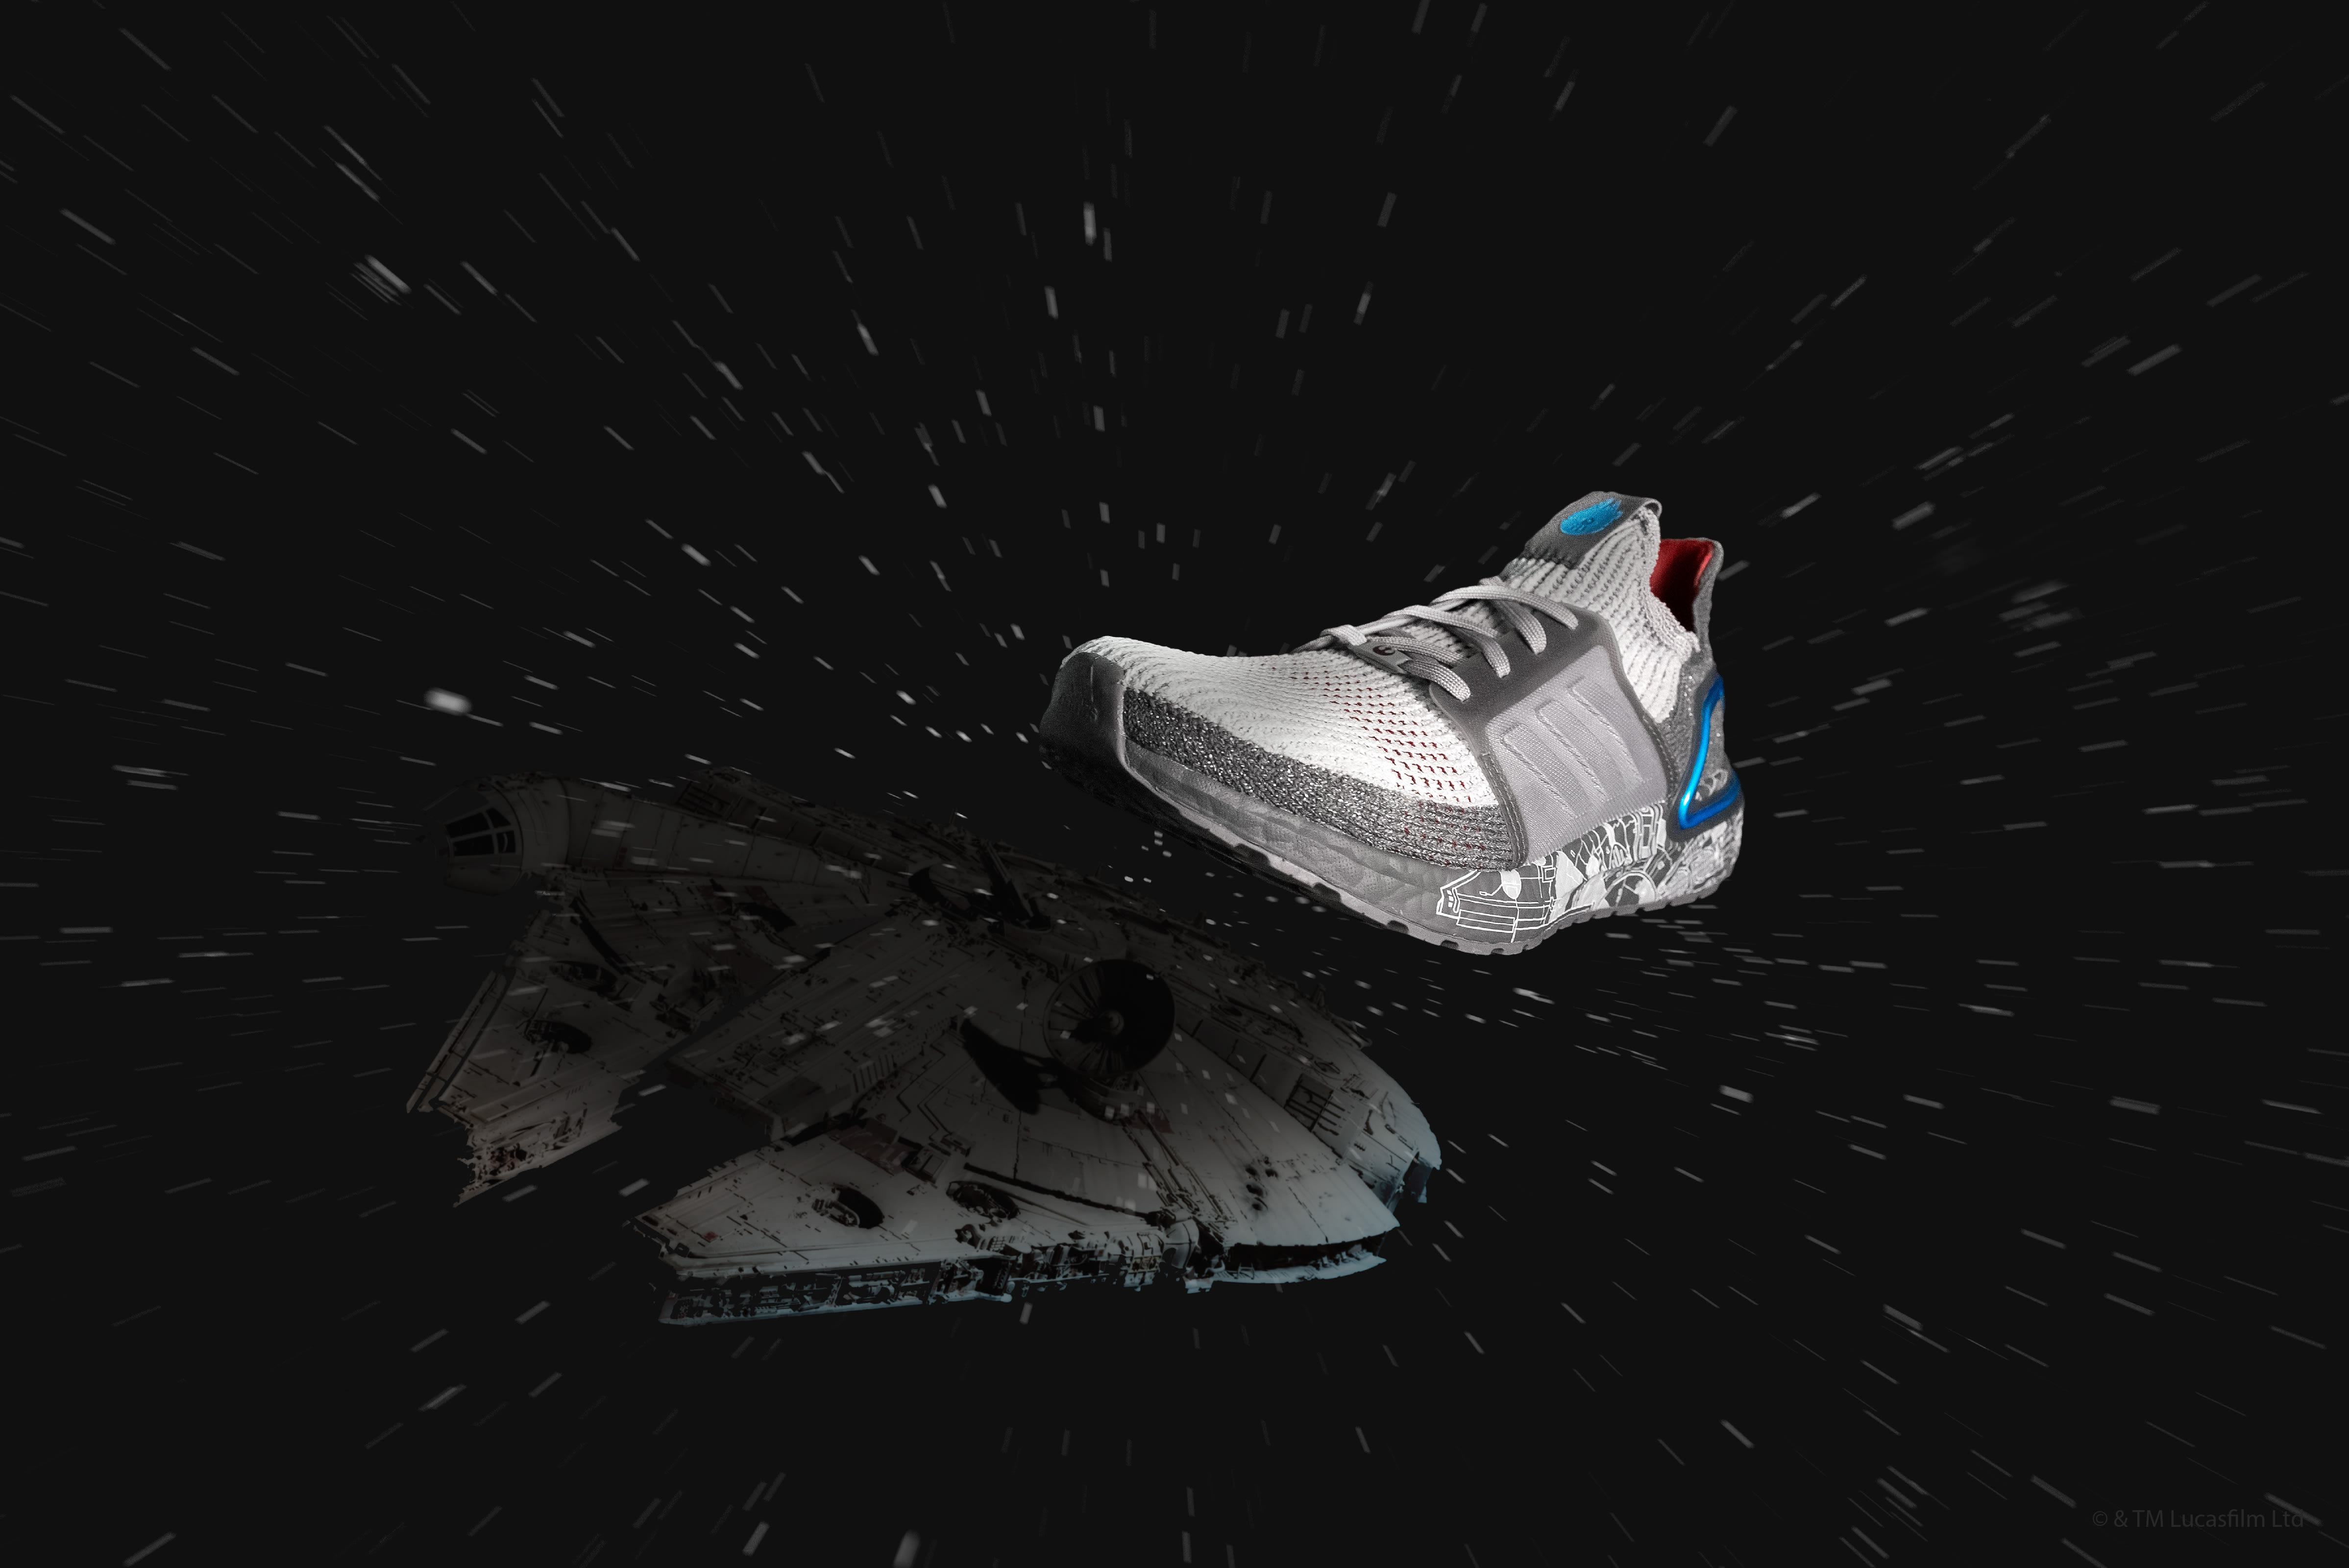 star-wars-adidas-space-battle-pack-ultra-boost-19